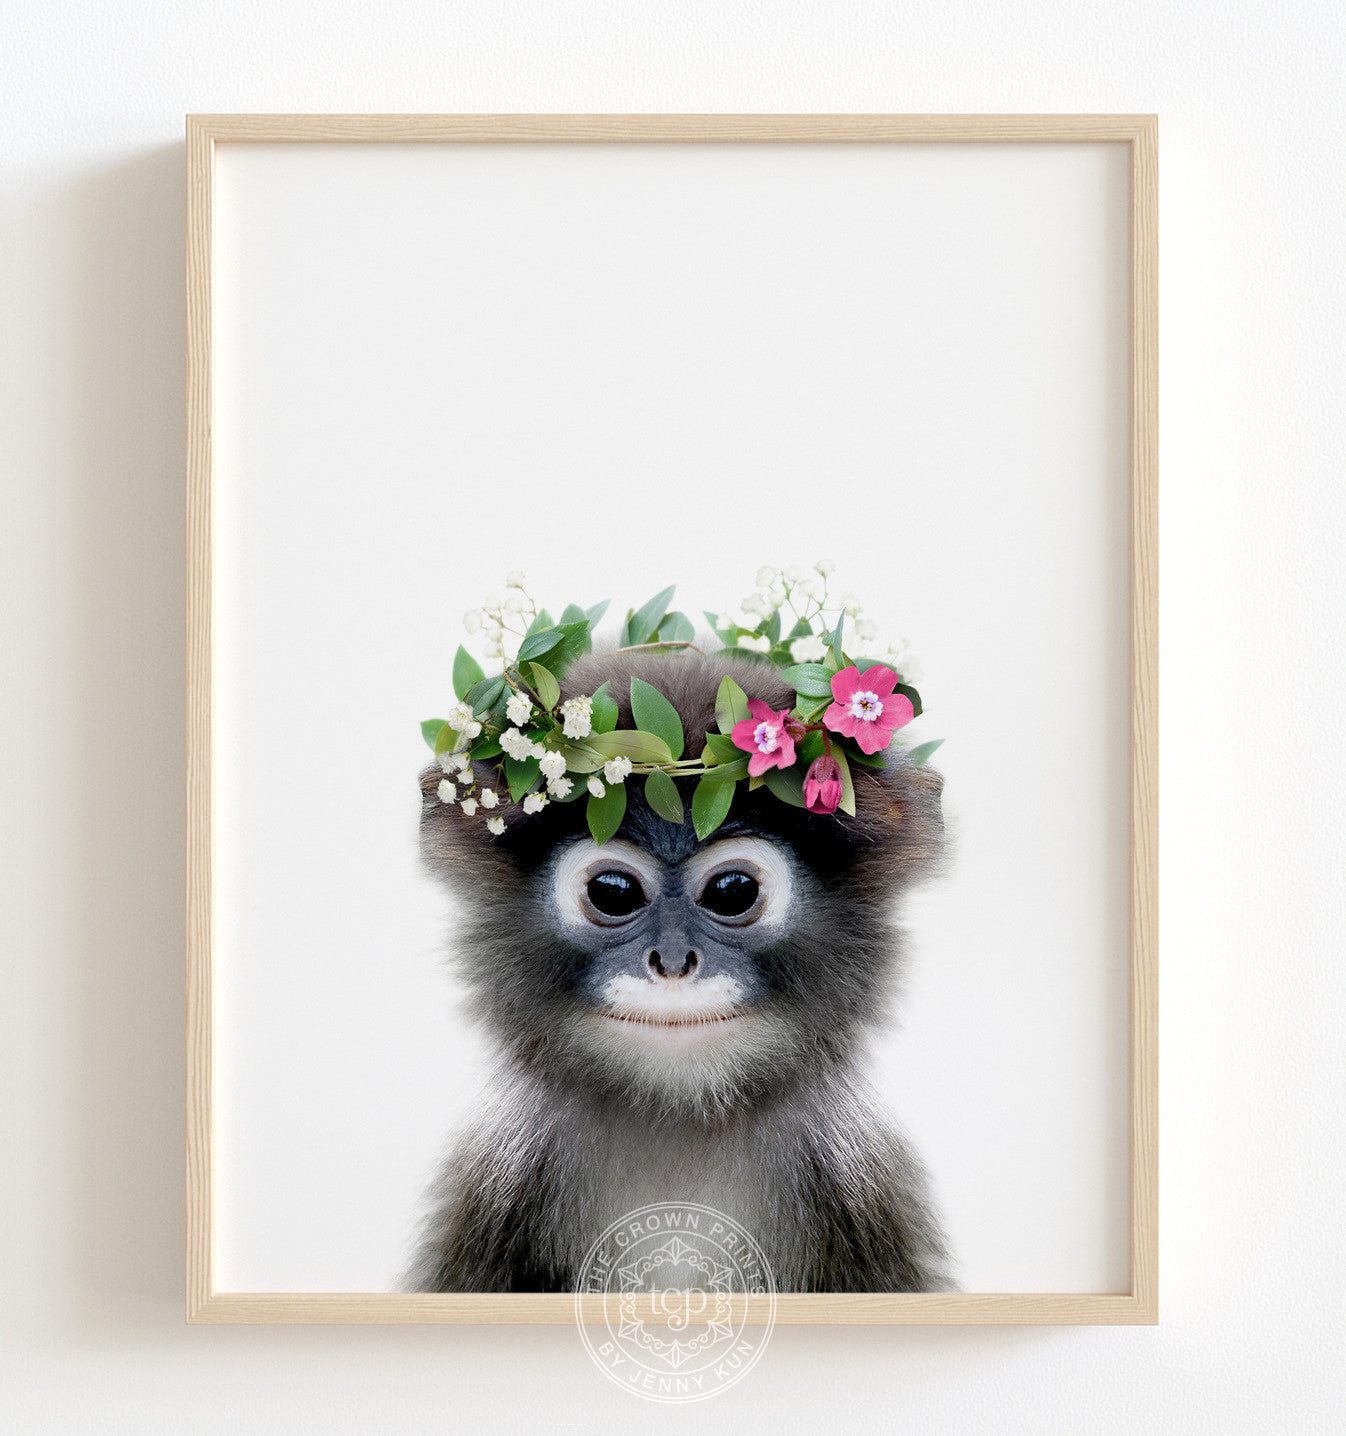 Baby Monkey with Flower Crown Printable Art